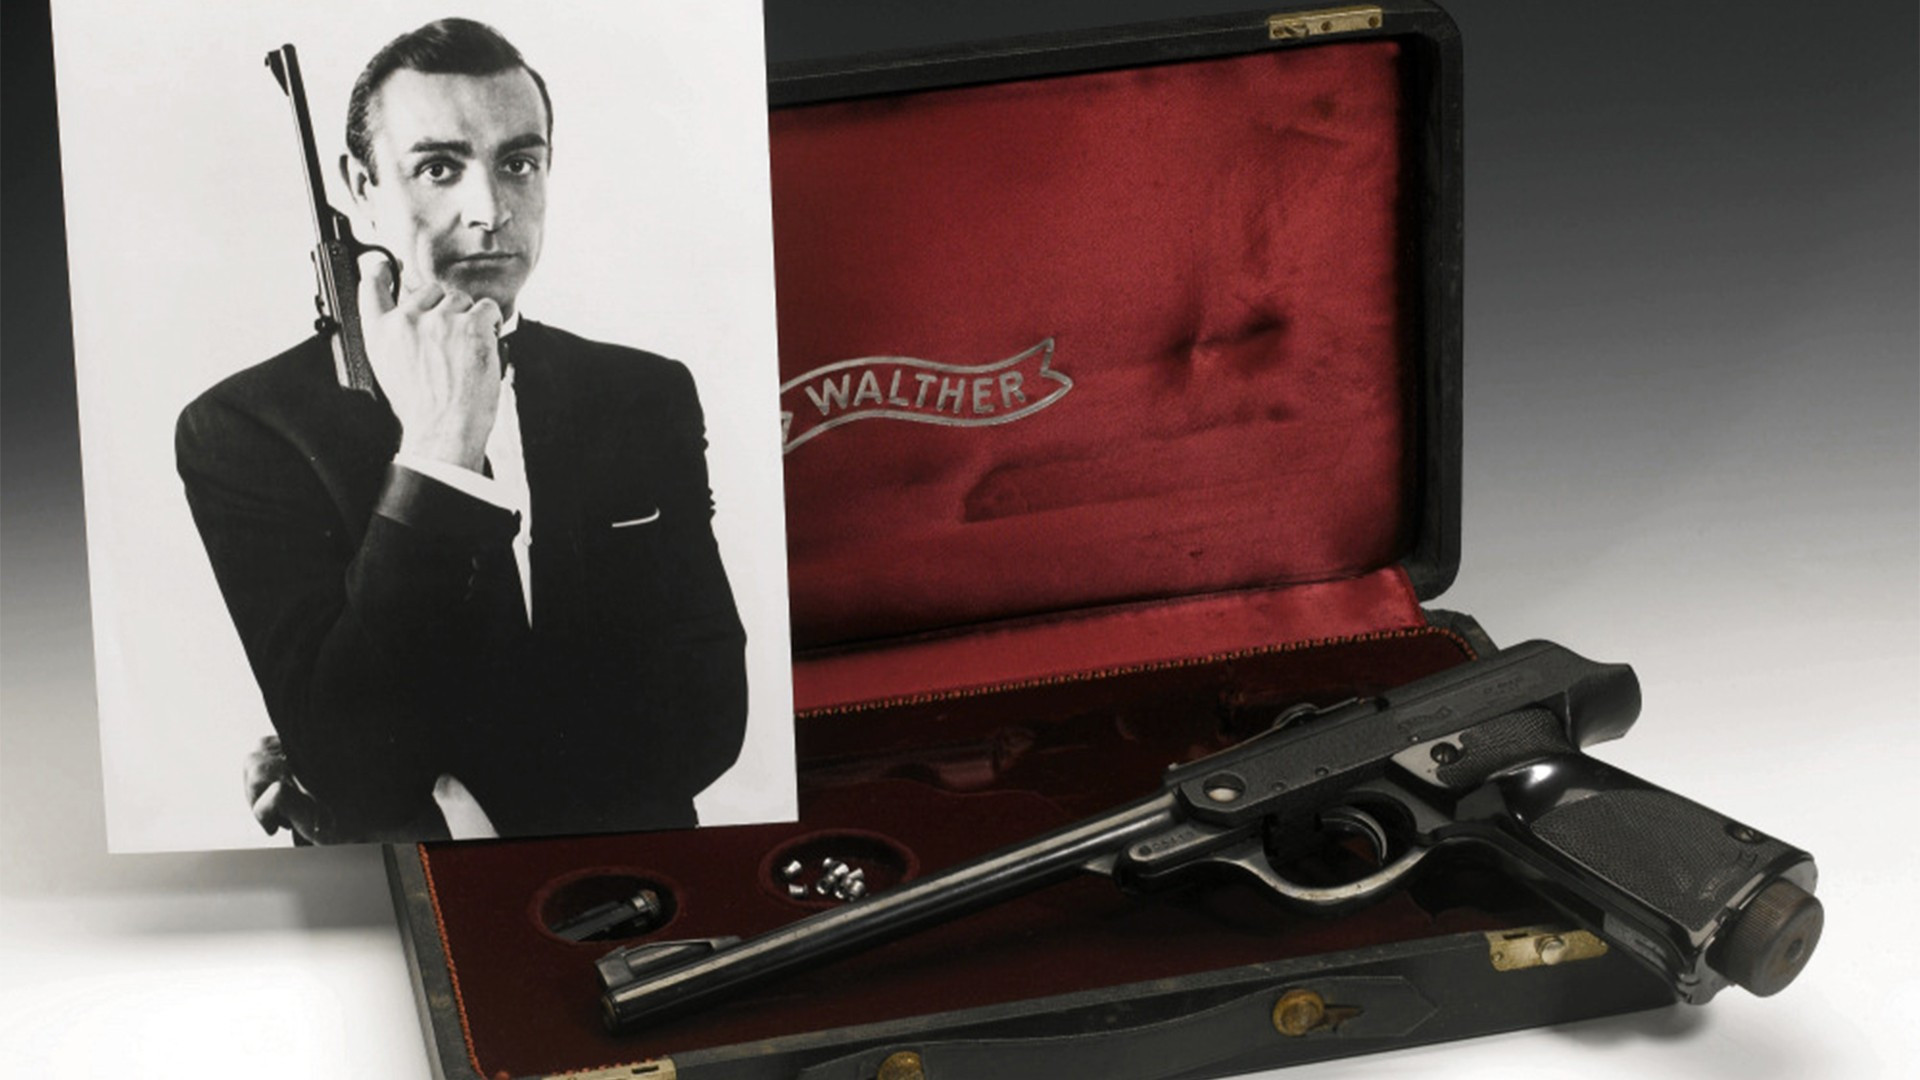 Walther Air Pistol (From Russia with Love)